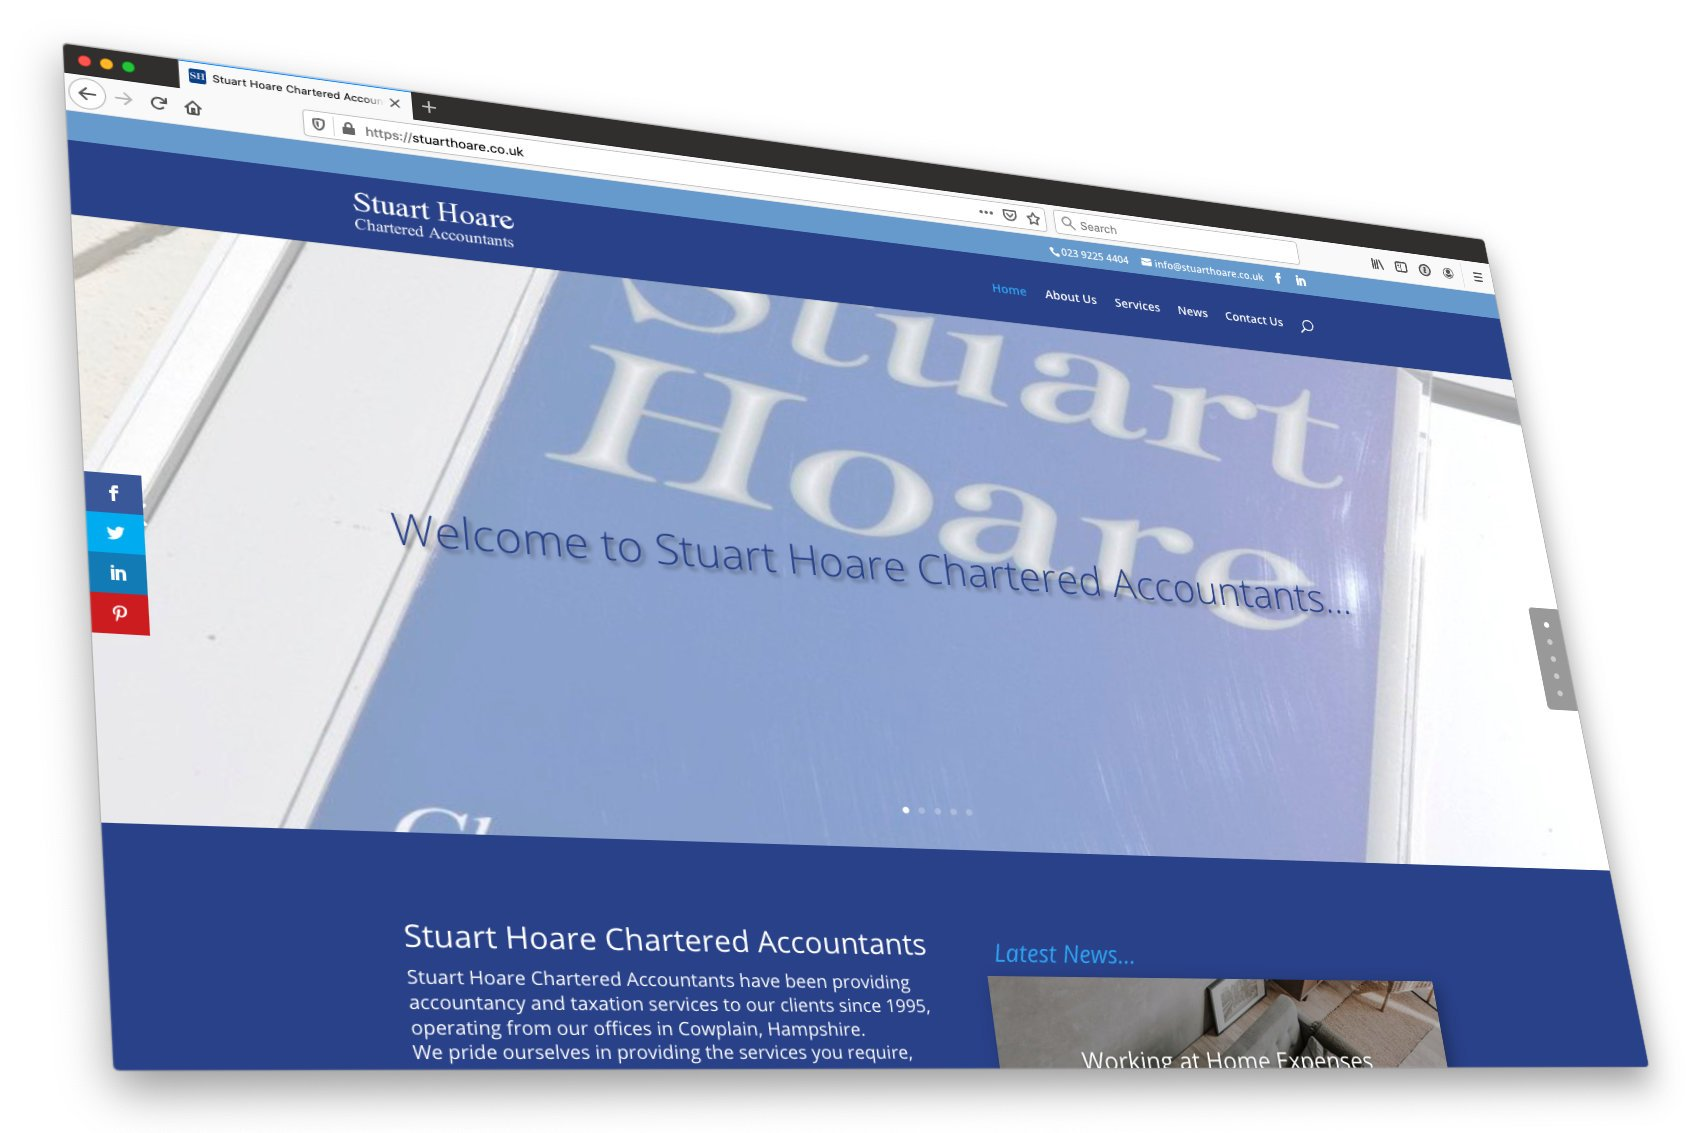 Stuart Hoare New Website launched